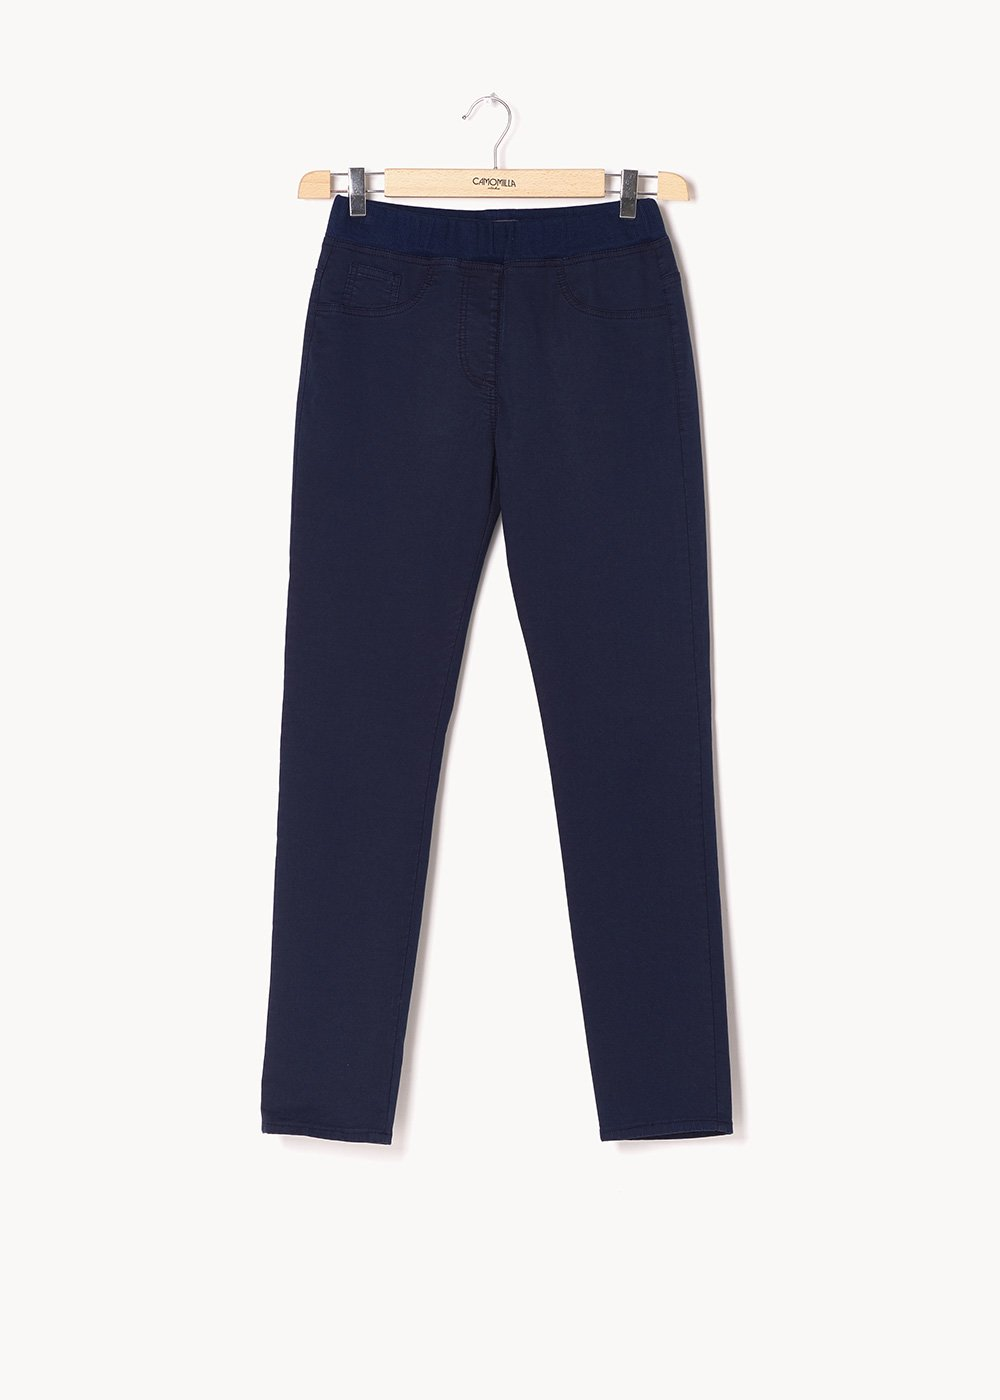 Pantaloni modello Kelly con elastico in tono - Blue - Donna